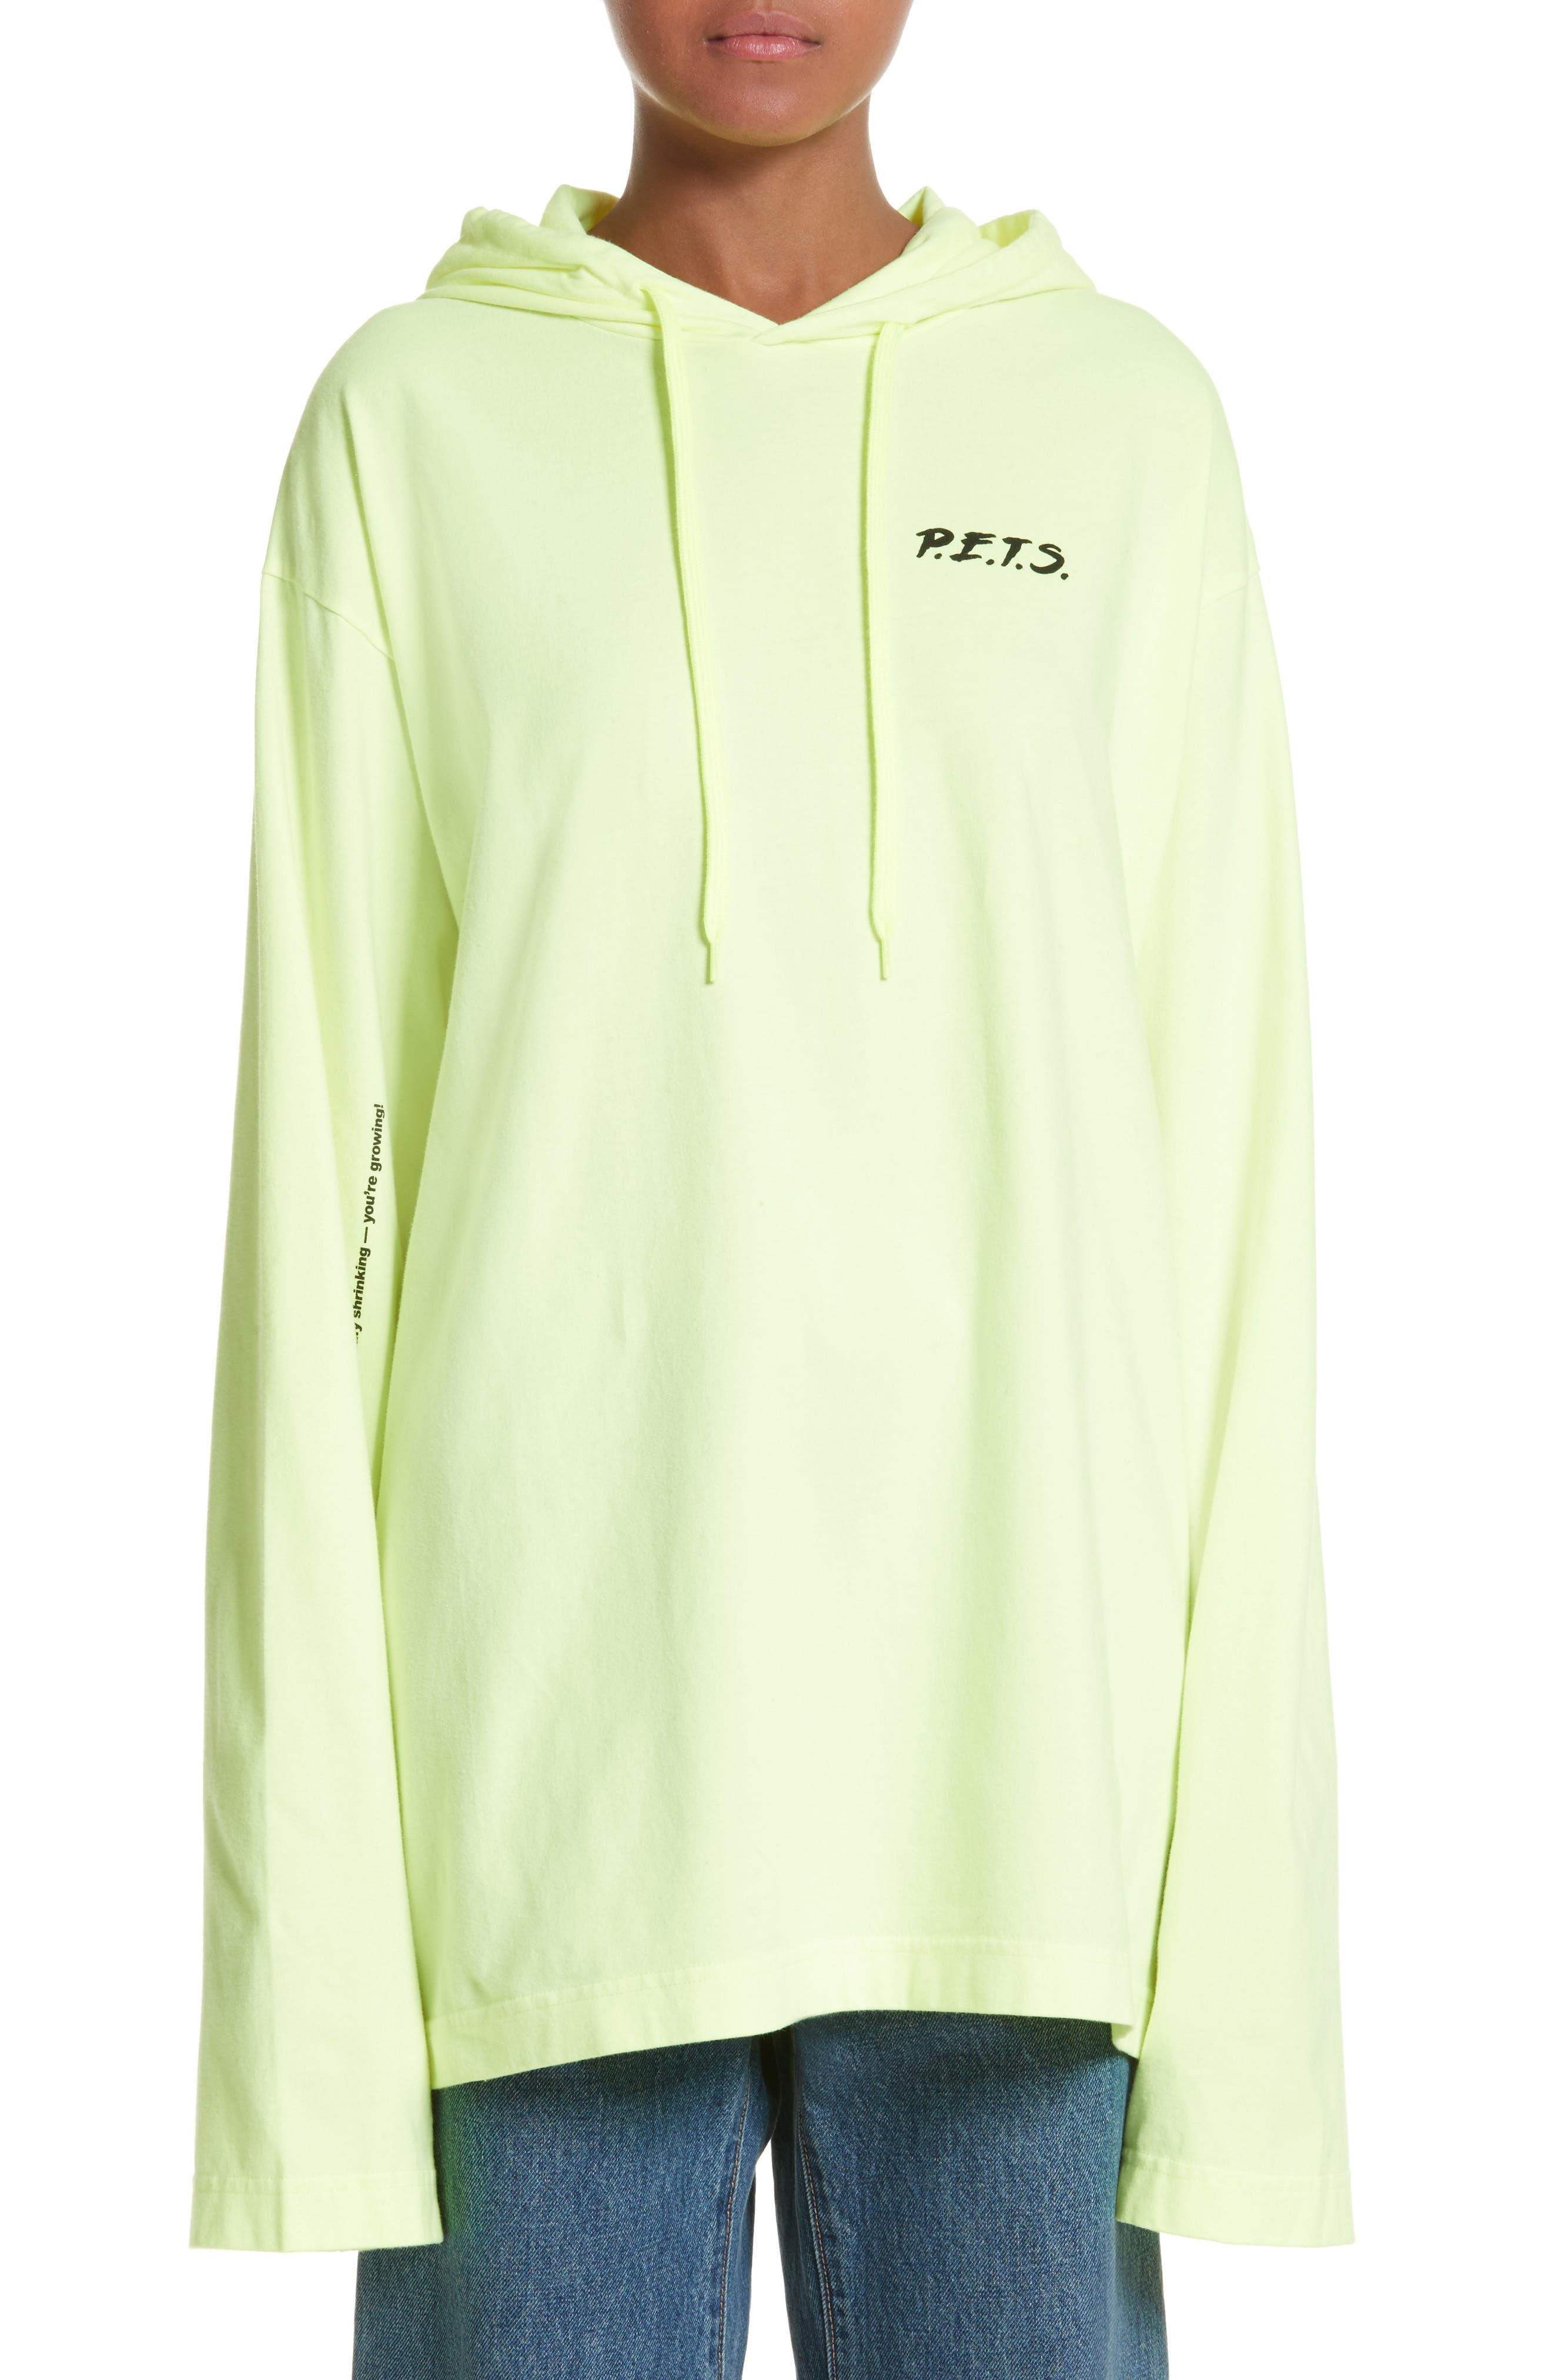 P.E.T.S. Jersey Pullover Hoodie,                         Main,                         color, Neon/ Print